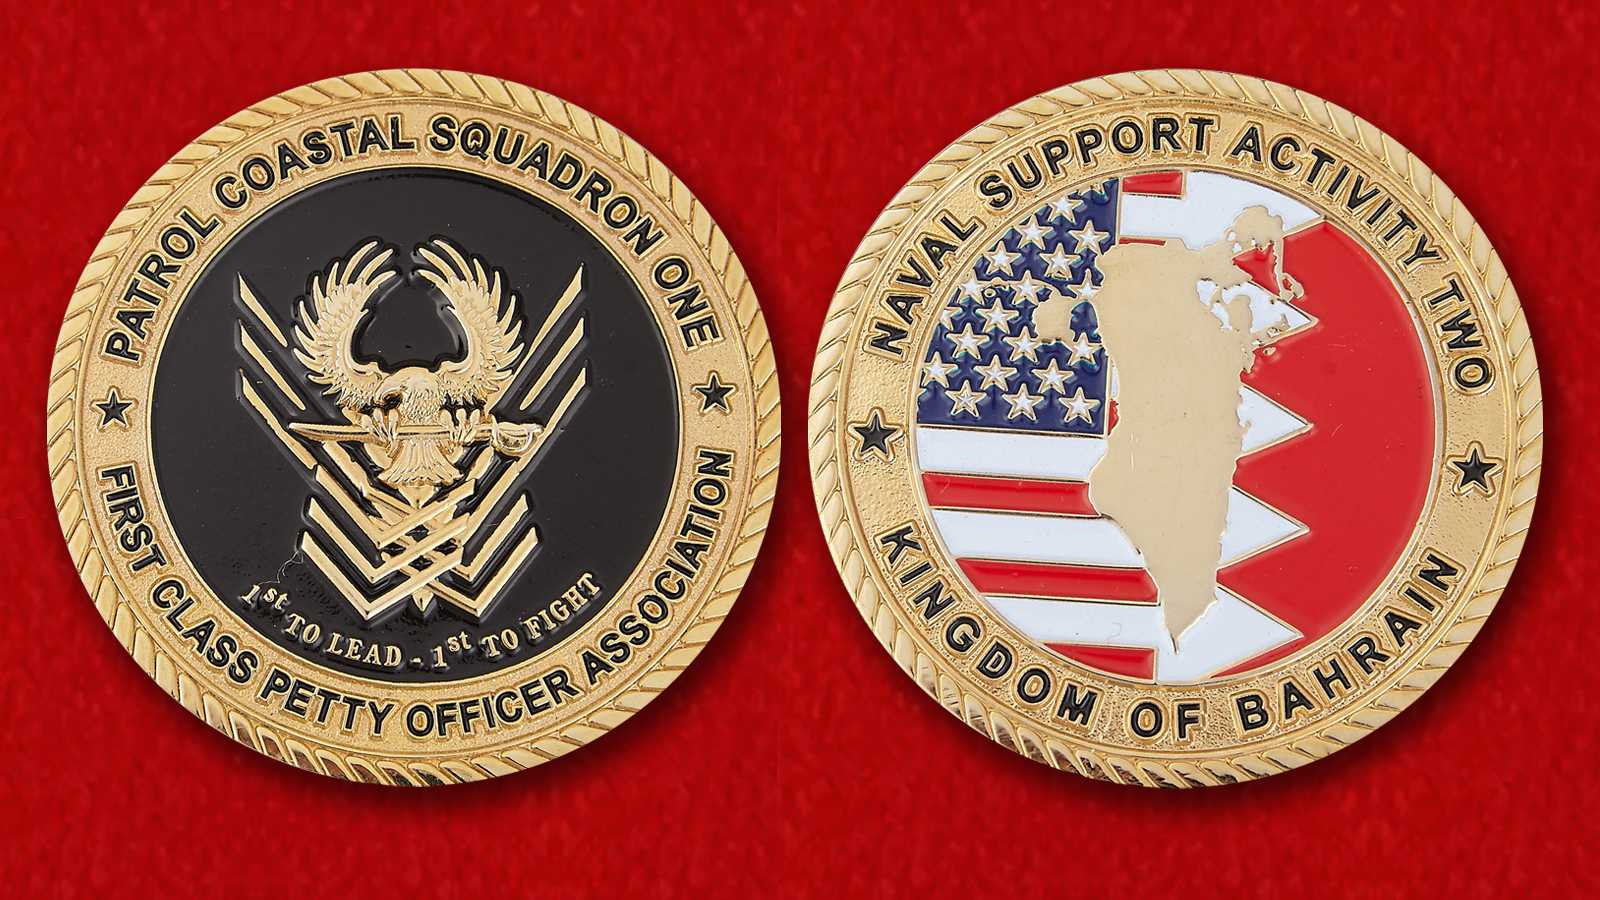 USN Navy Support Activity 2, Bahrain Patrol Coastal Squadron 1 First Class Petty Officer Challenge Coin